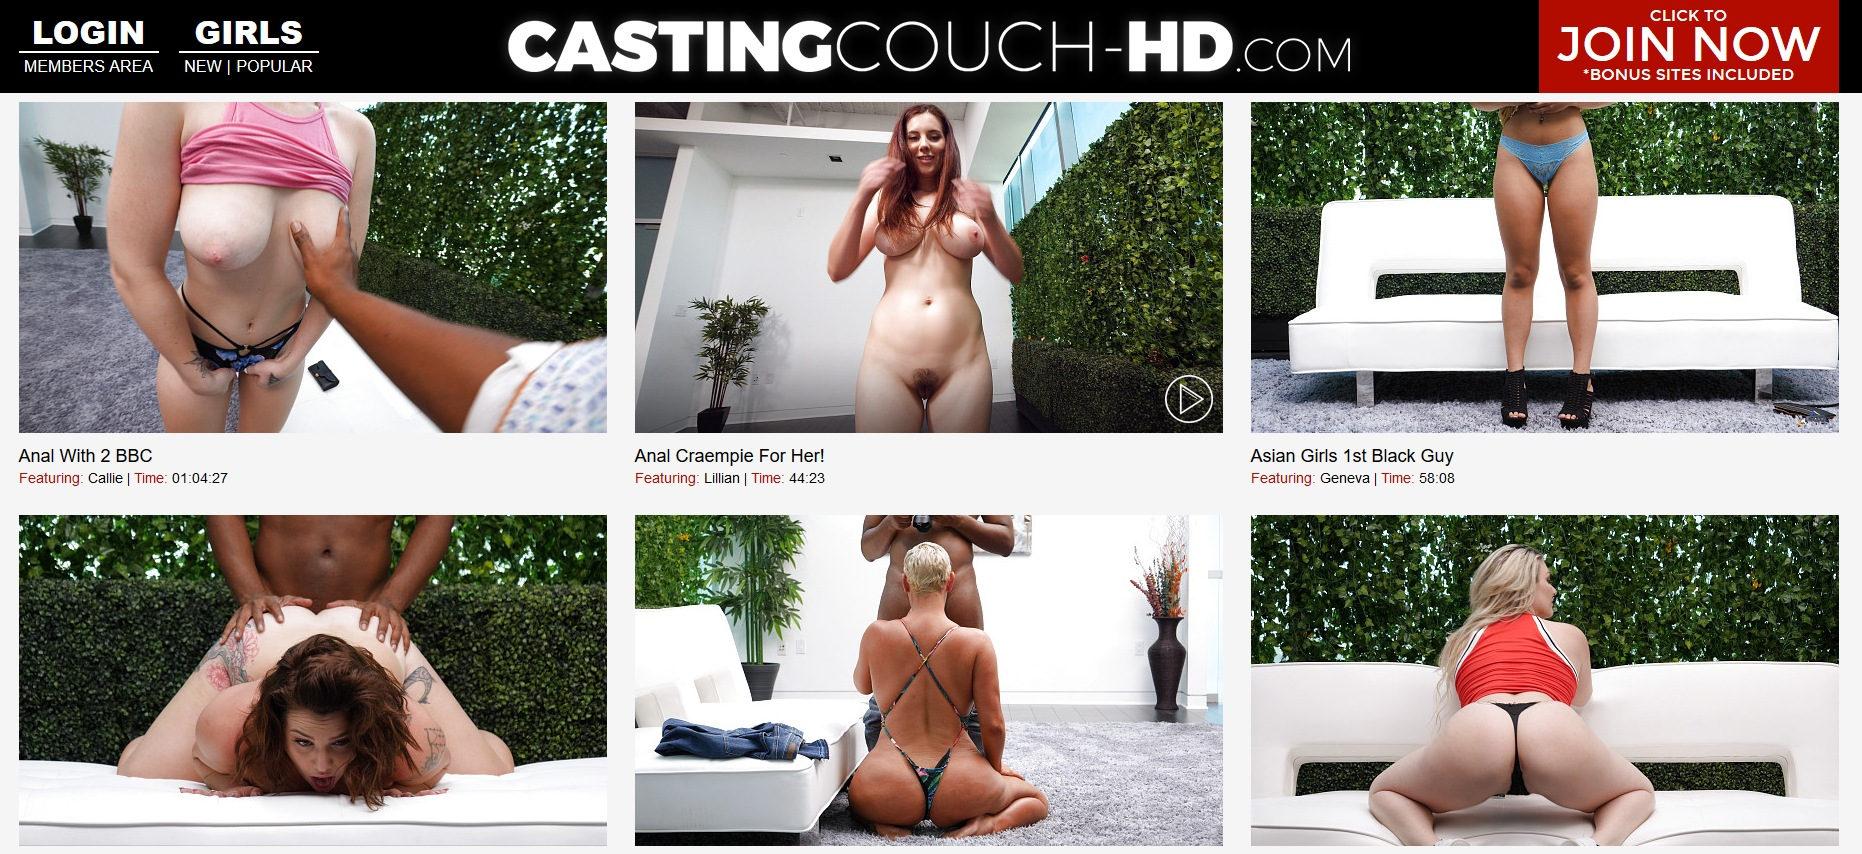 https://piratepass.pw/wp-content/uploads/2019/09/castingcouch-hd.com-QXcLGIuWizhiIcLXACabTlFF.jpg pass